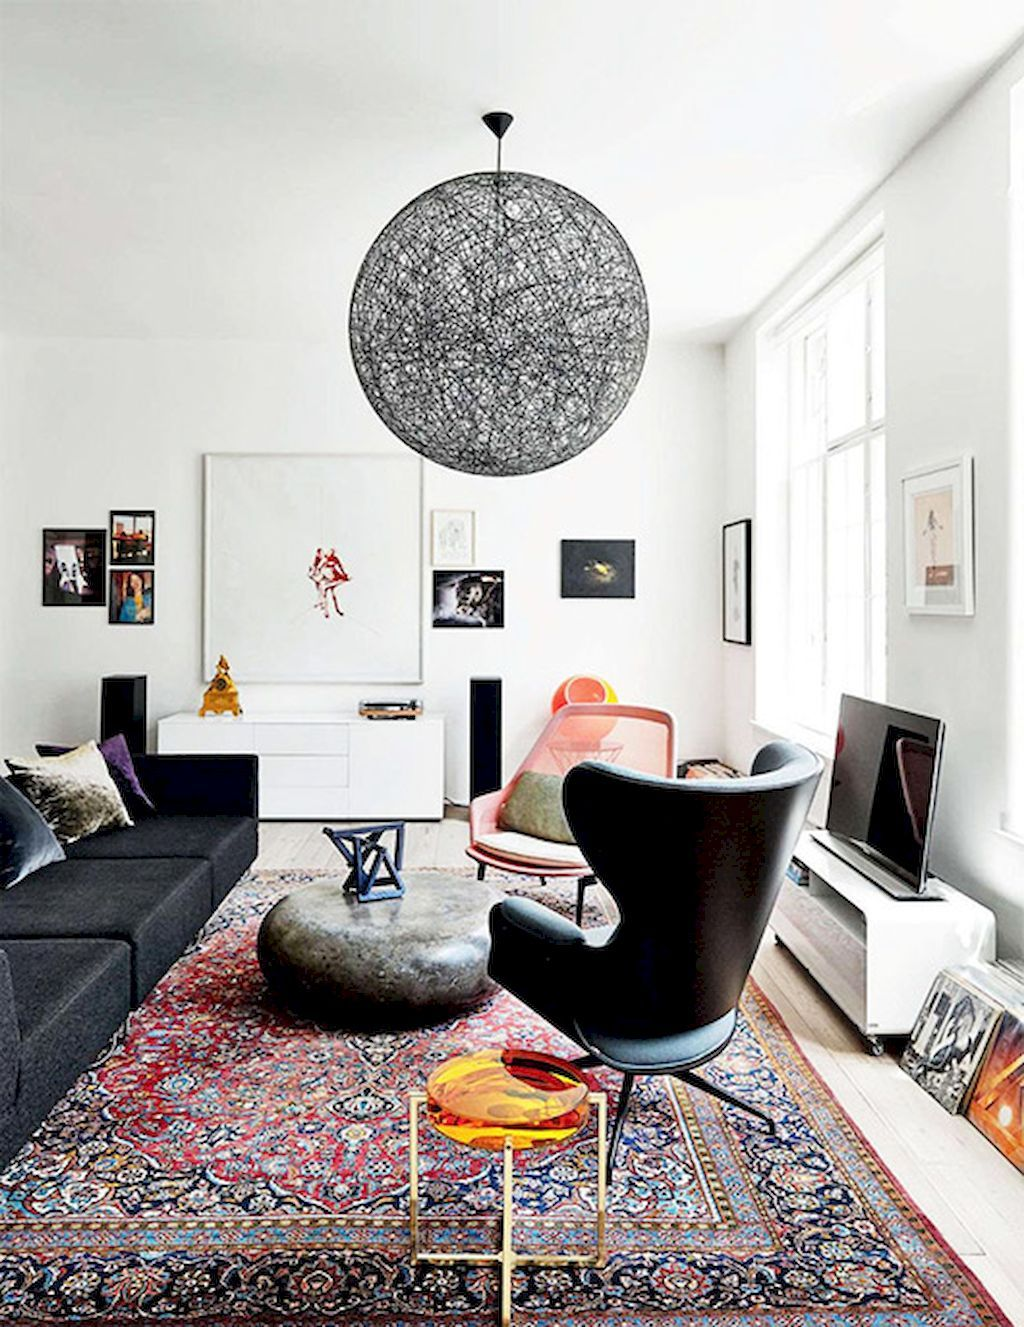 60 Eclectic Living Room Design Ideas For